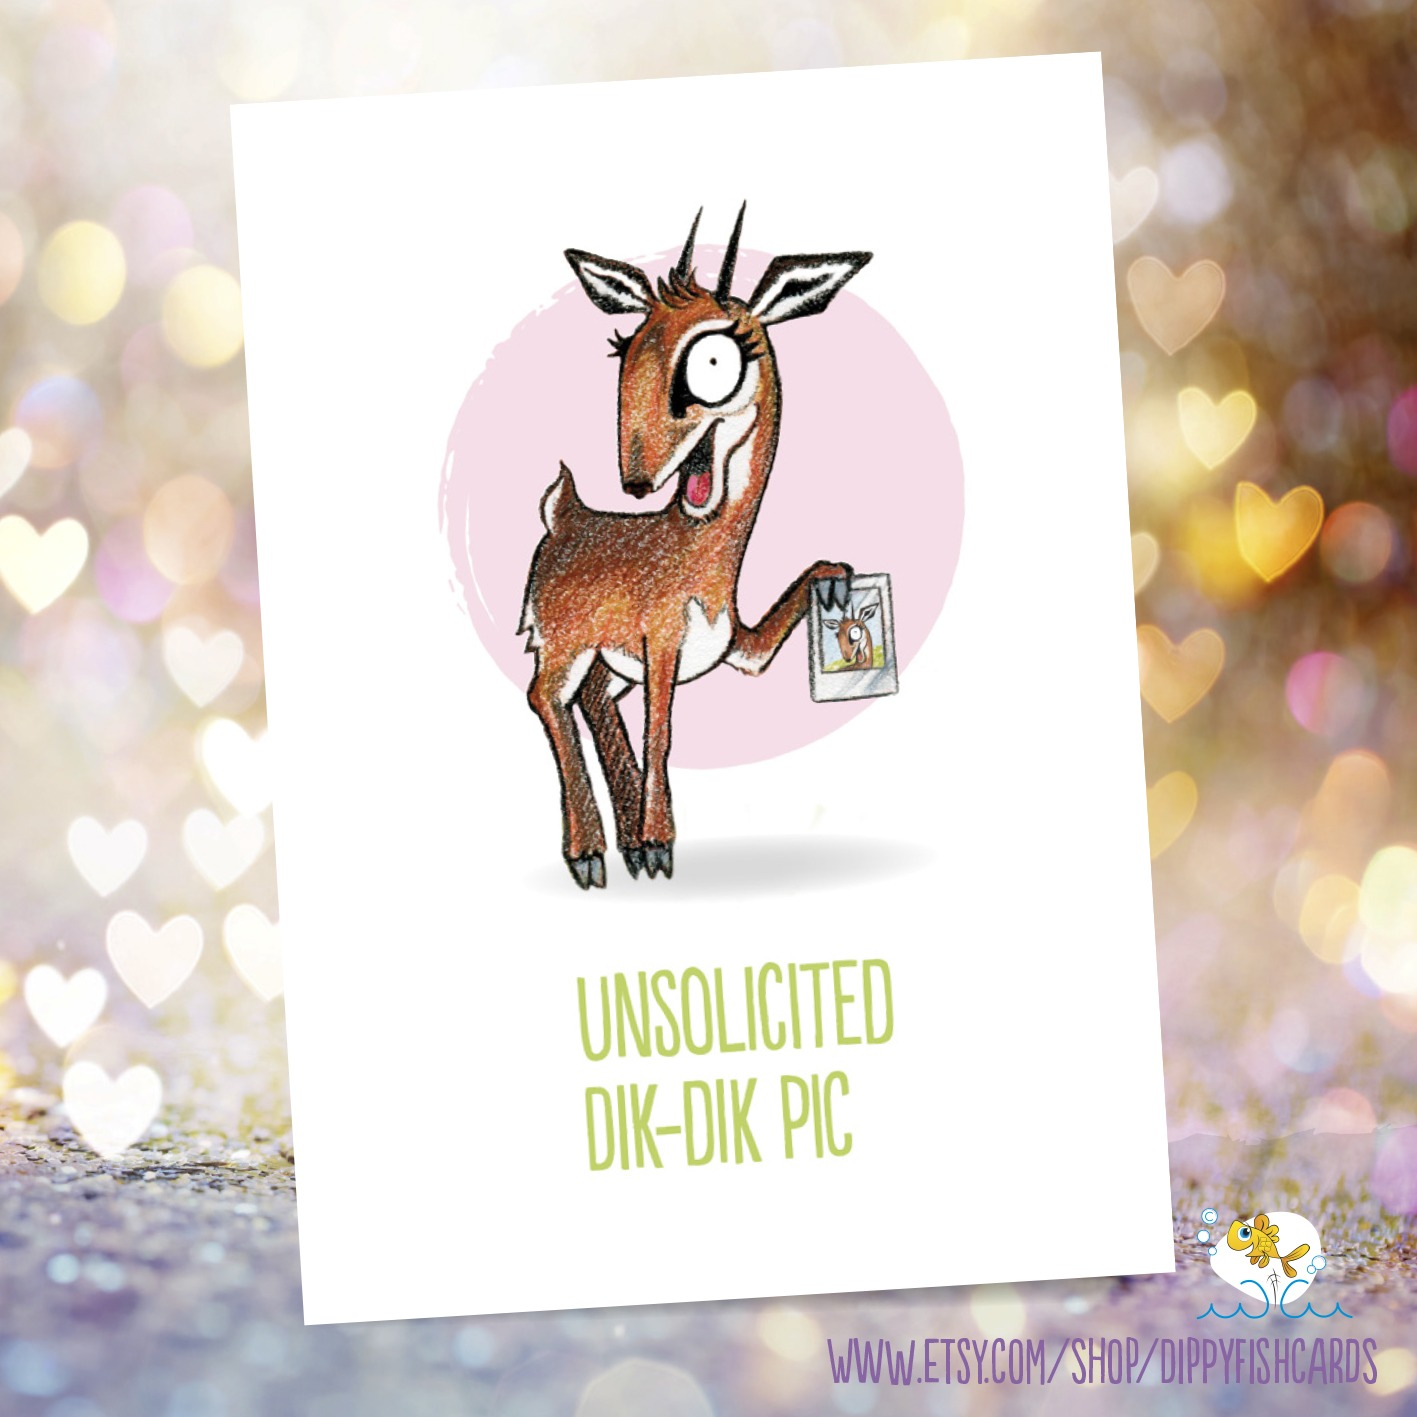 Dippyfish Cards Valentine's Day card Dik Dik pic